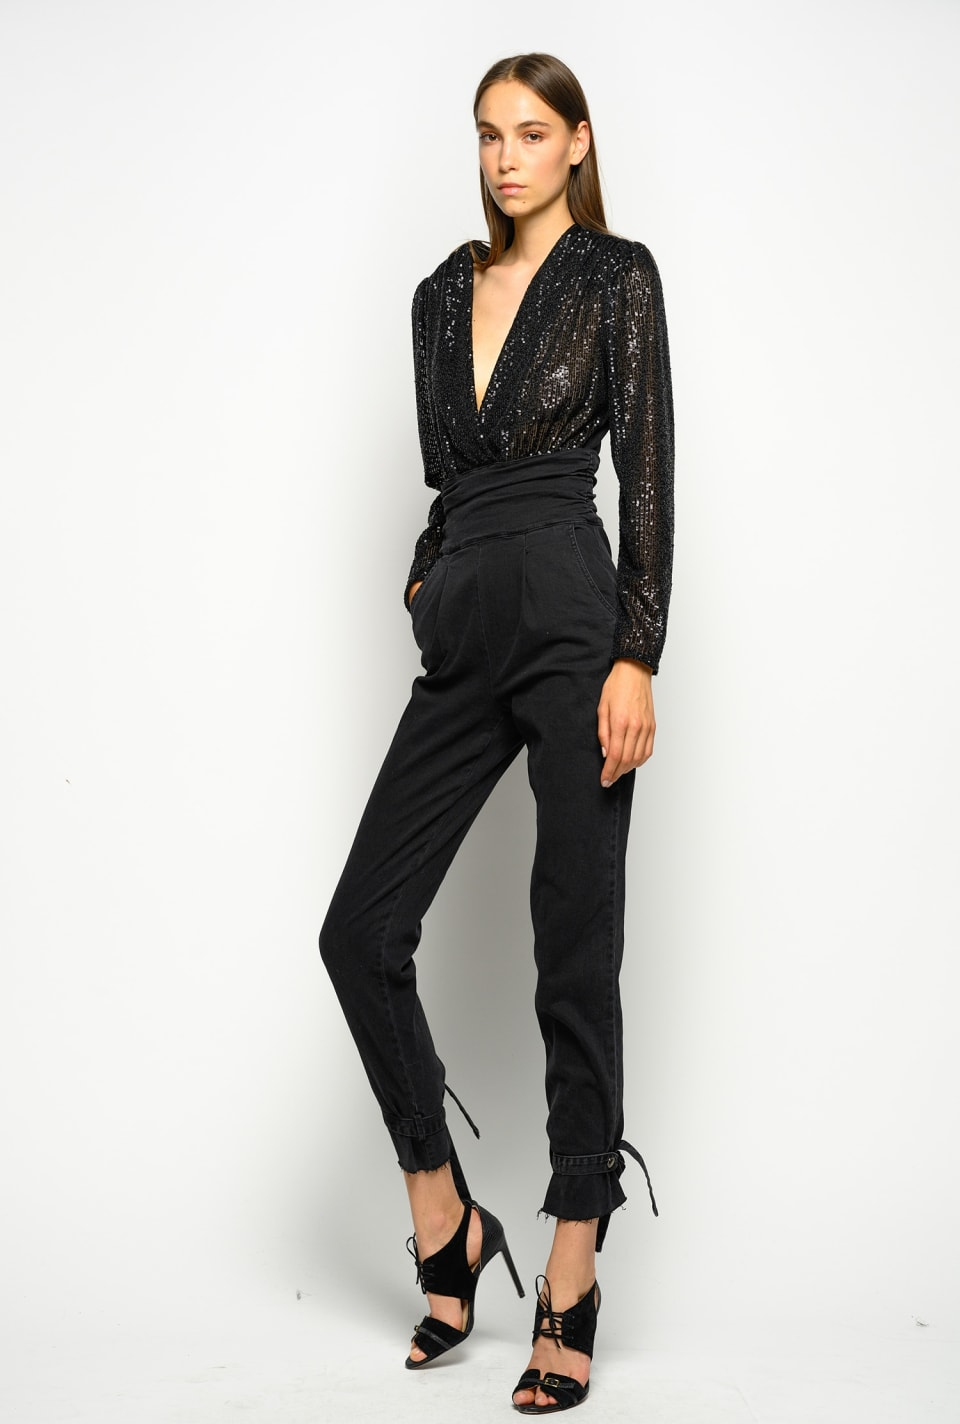 Tuta in comfort denim black e paillettes